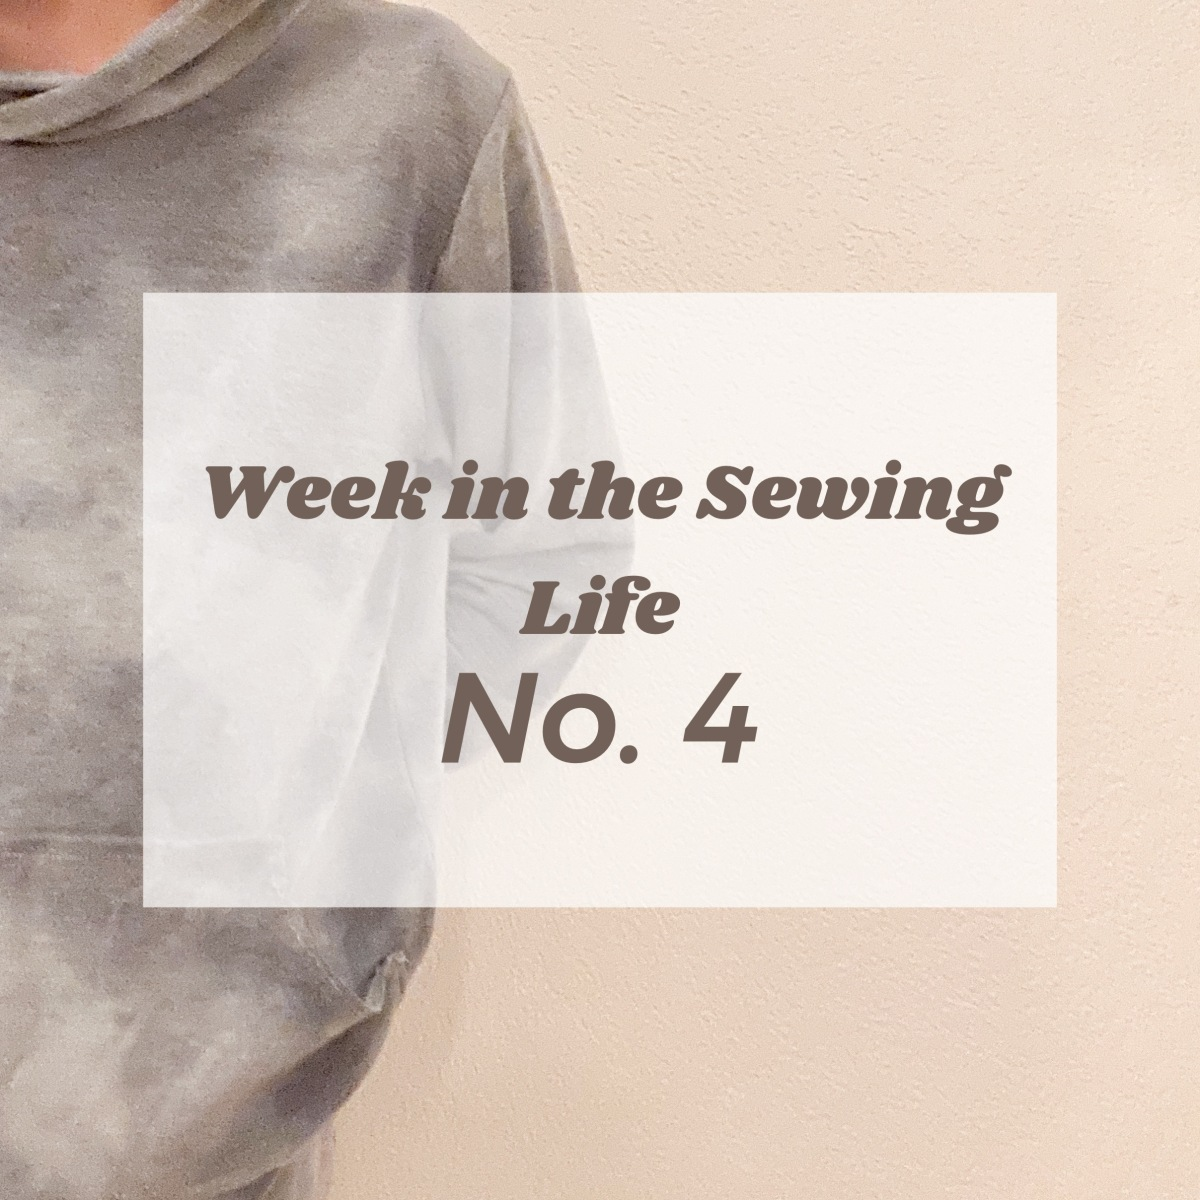 Week in the Sewing Life no.4